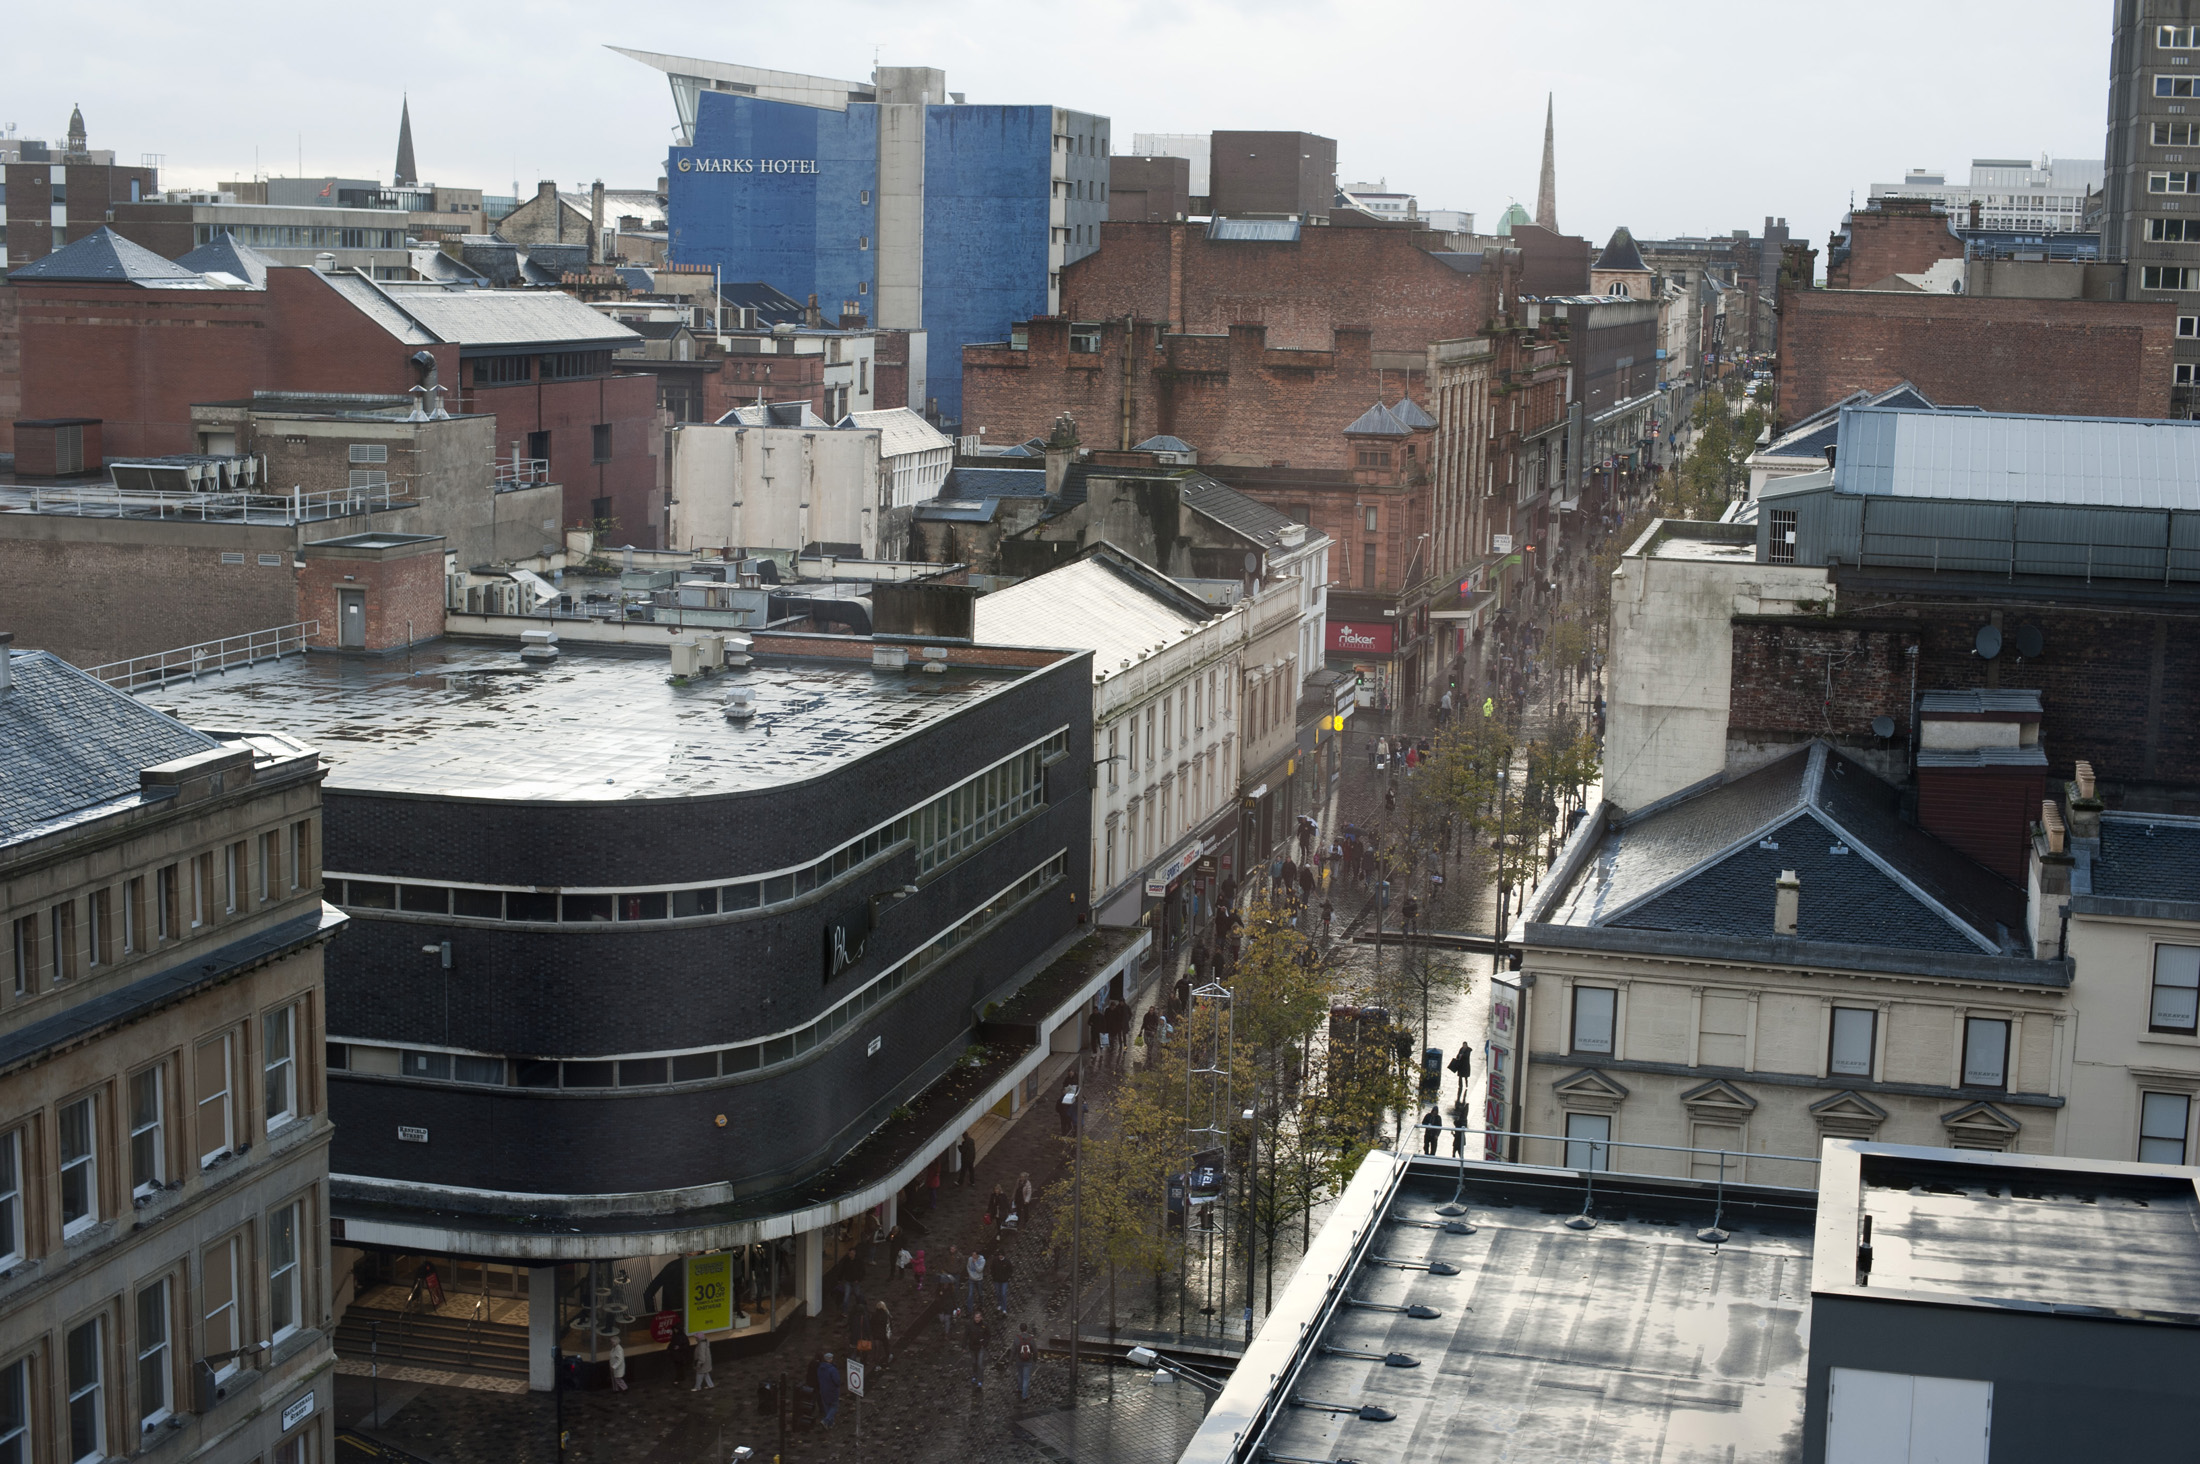 Aerial view of Sauchiehall Street in Glasgow, Scotland which is one of the main shopping and commercial streets in the city centre